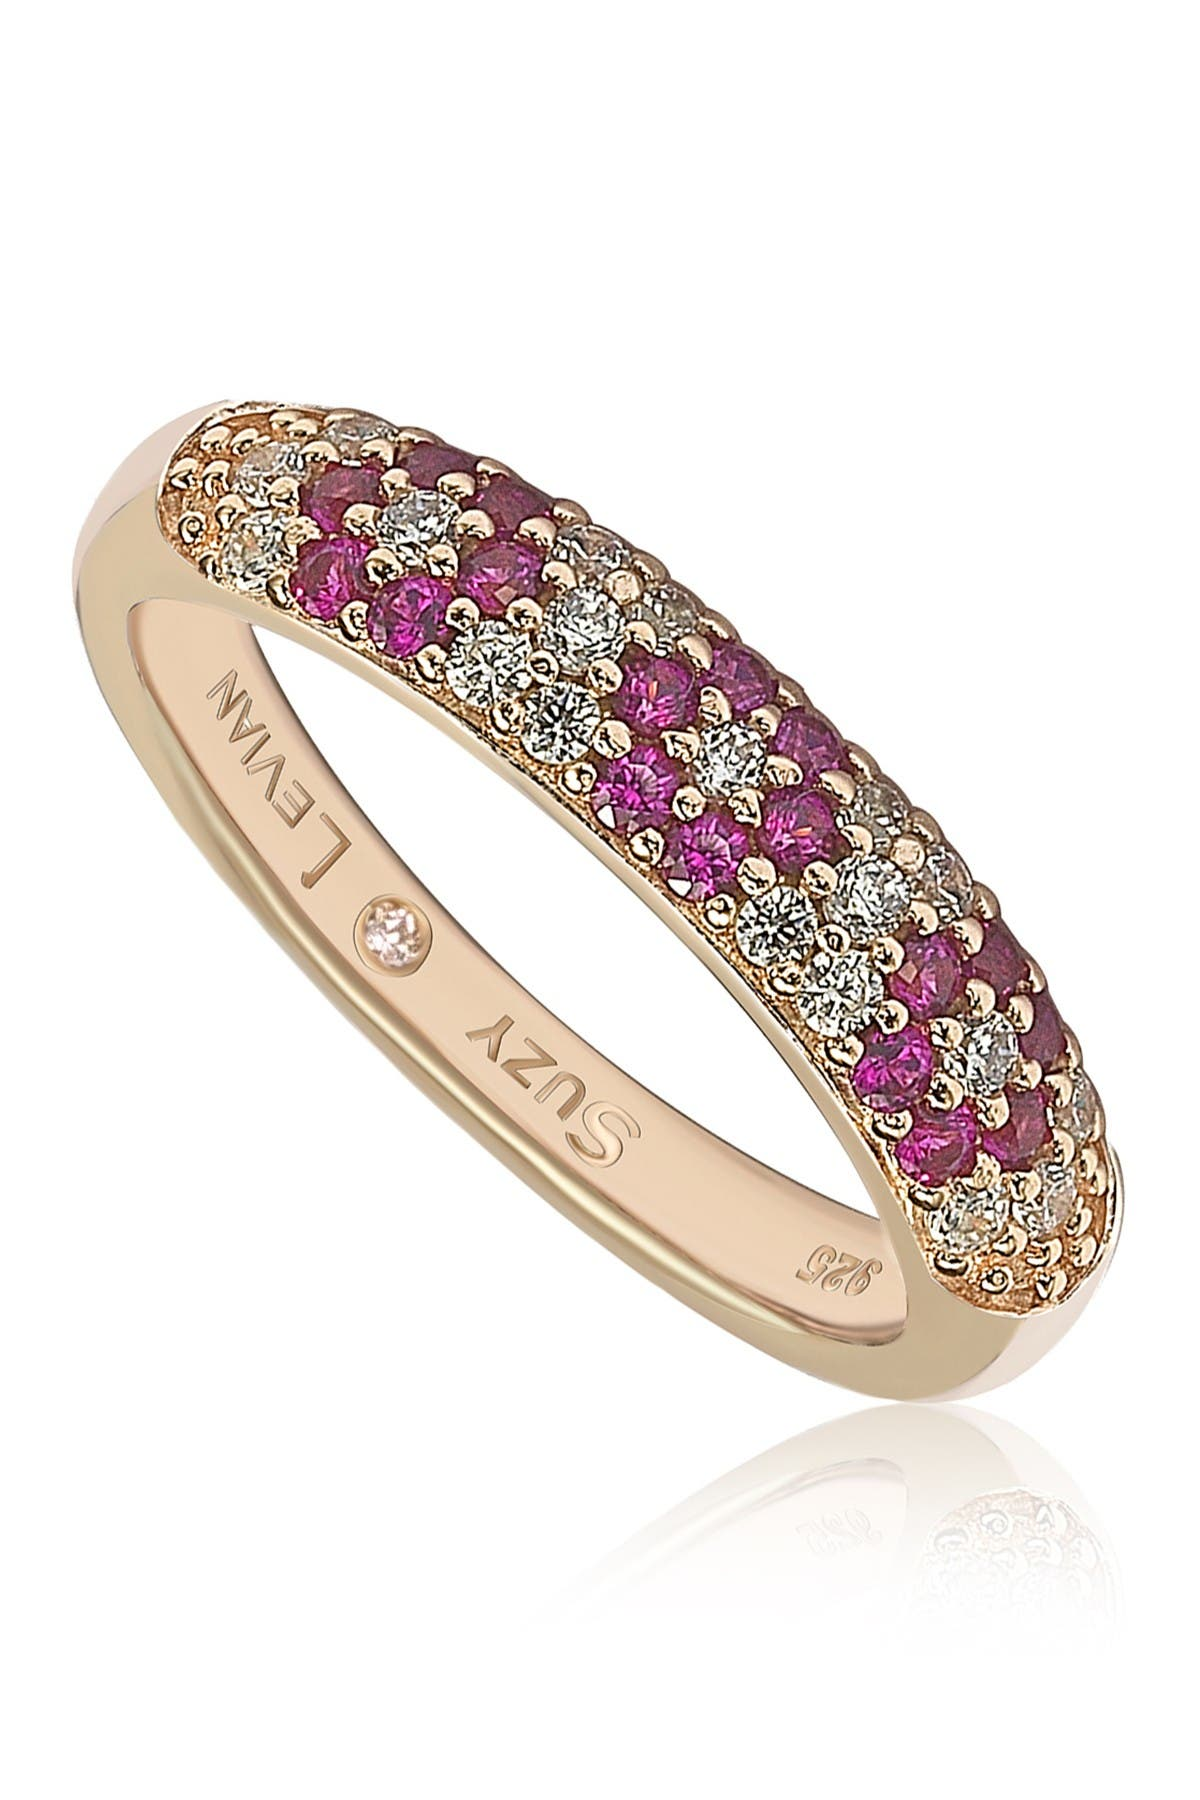 Image of Suzy Levian Rose-Tone Plated Sterling Silver Pave CZ Flower Band Ring